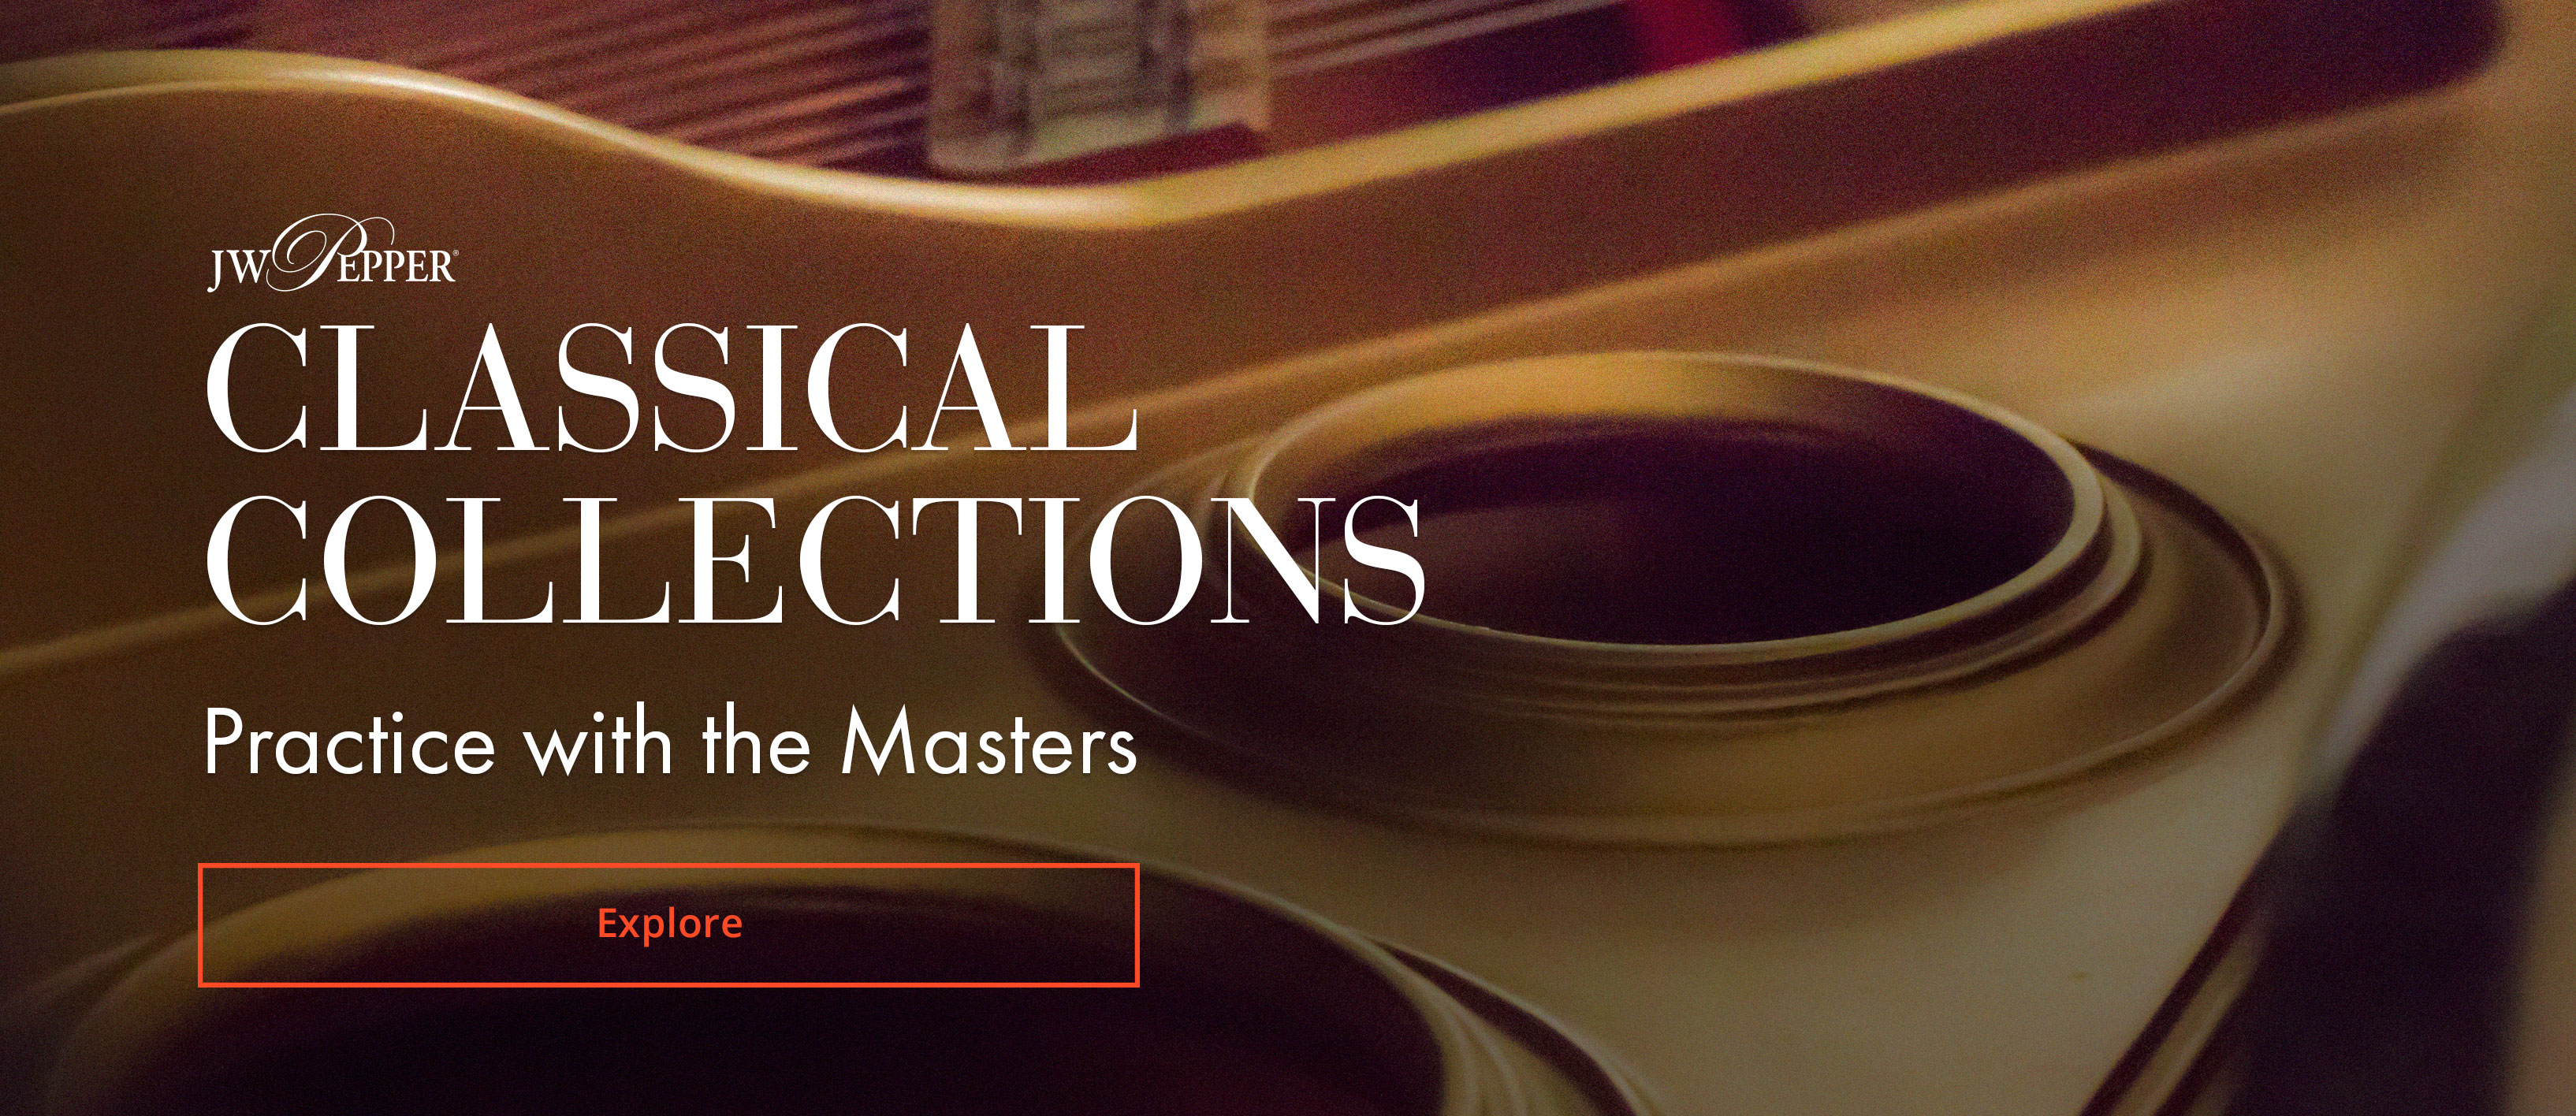 Explore classical piano music collections and practice with the masters!